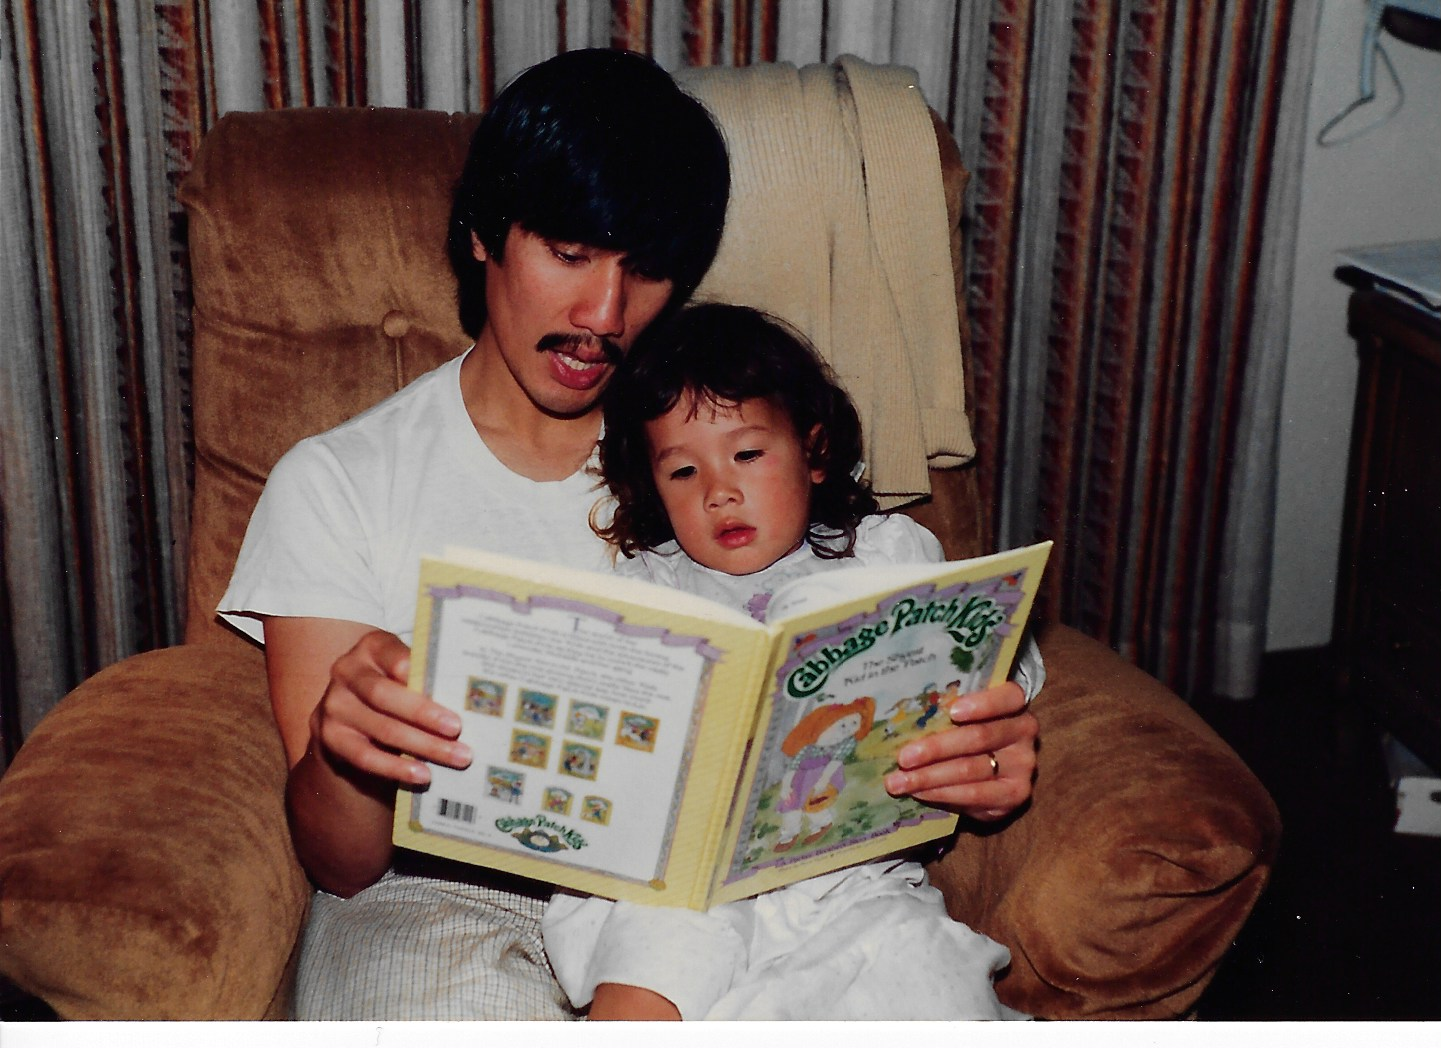 My parents read to me every single night. I think that's why I love stories so much and want to be a writer!